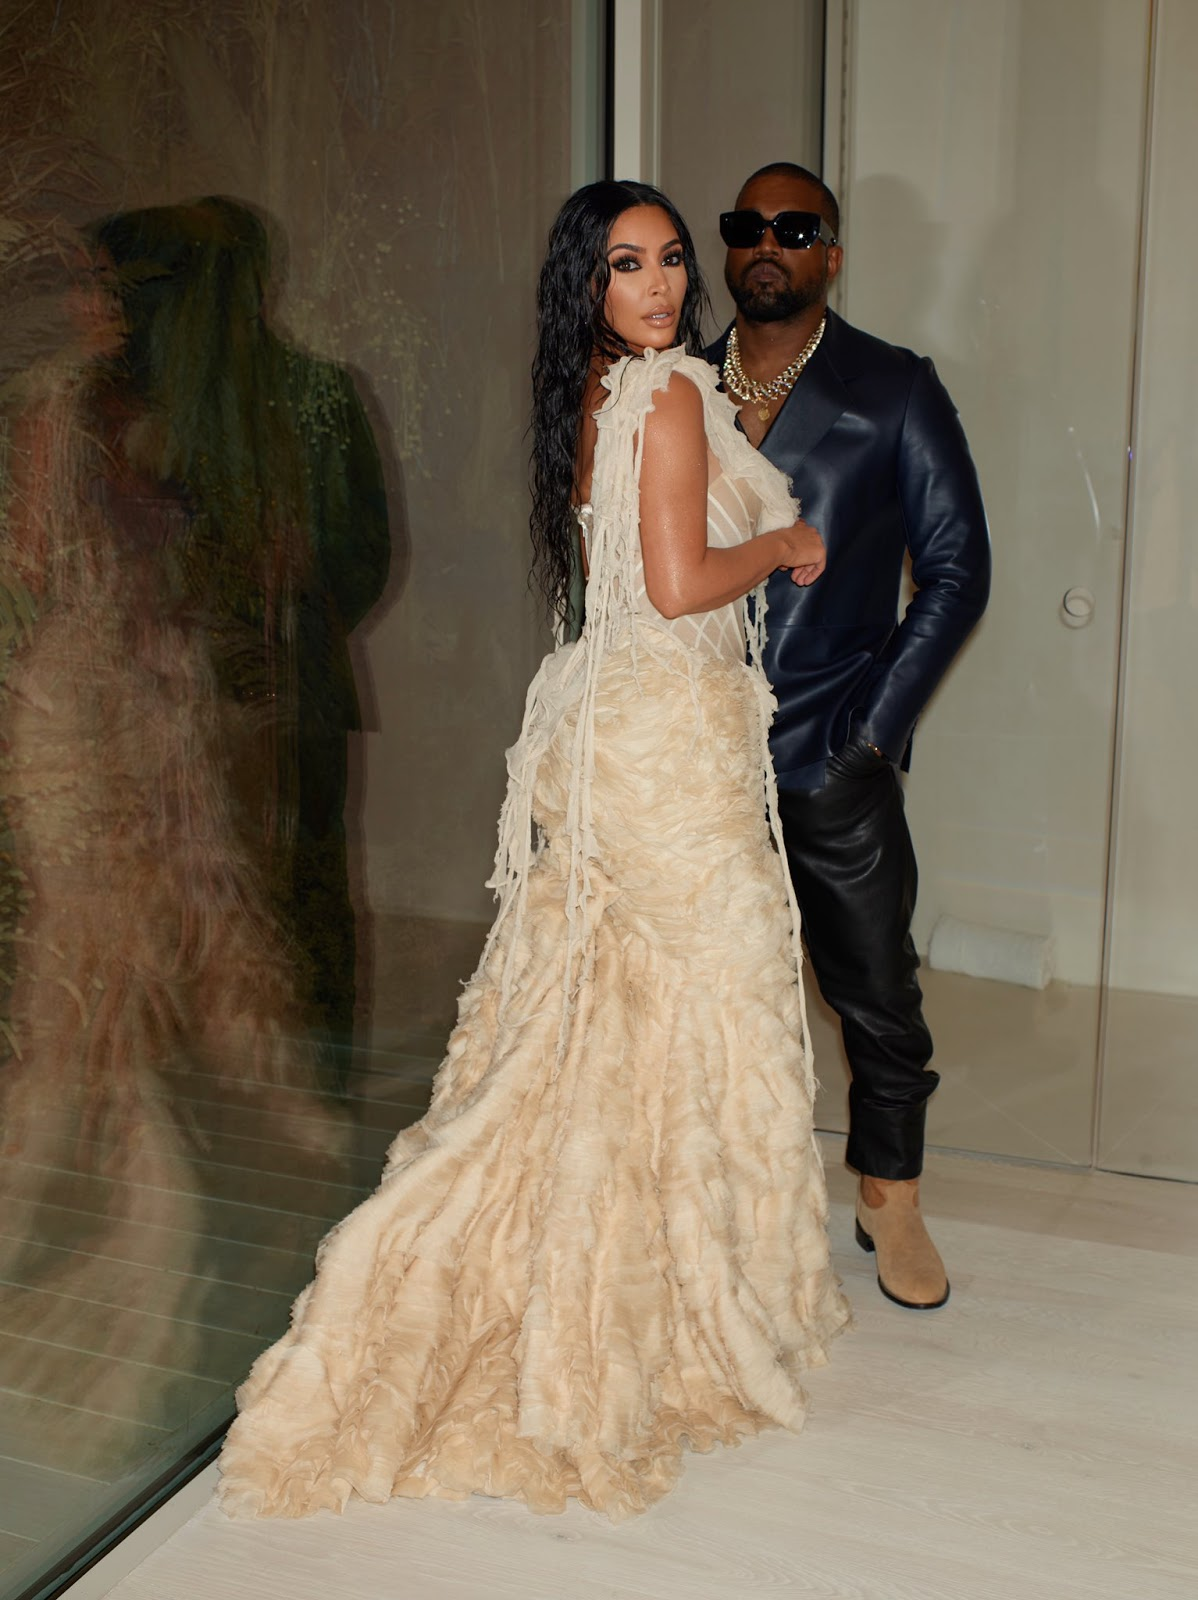 Kim Kardashian and Kanye West at the vanity fair Oscars party